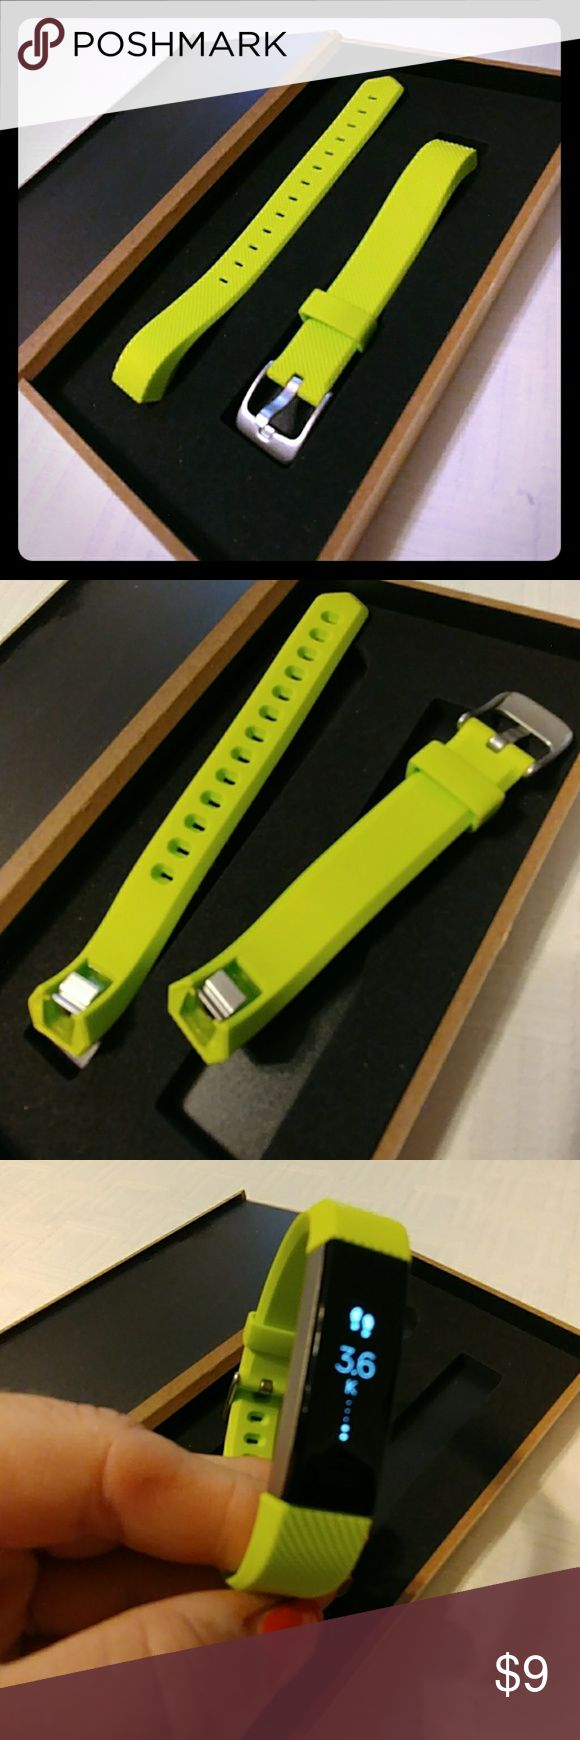 """Alta HR or regular green adjustable wristband Do you like to update your Alta fit bit band to accent your fashion? New green apple alta soft wrist band with secure silver buckle. Adjusts to fit large or small wrists 5.5"""" - 8.3"""". Integrated skip proof clip. Original buckle design, easy to install and remove. Box not included. EPYSN Accessories Watches"""